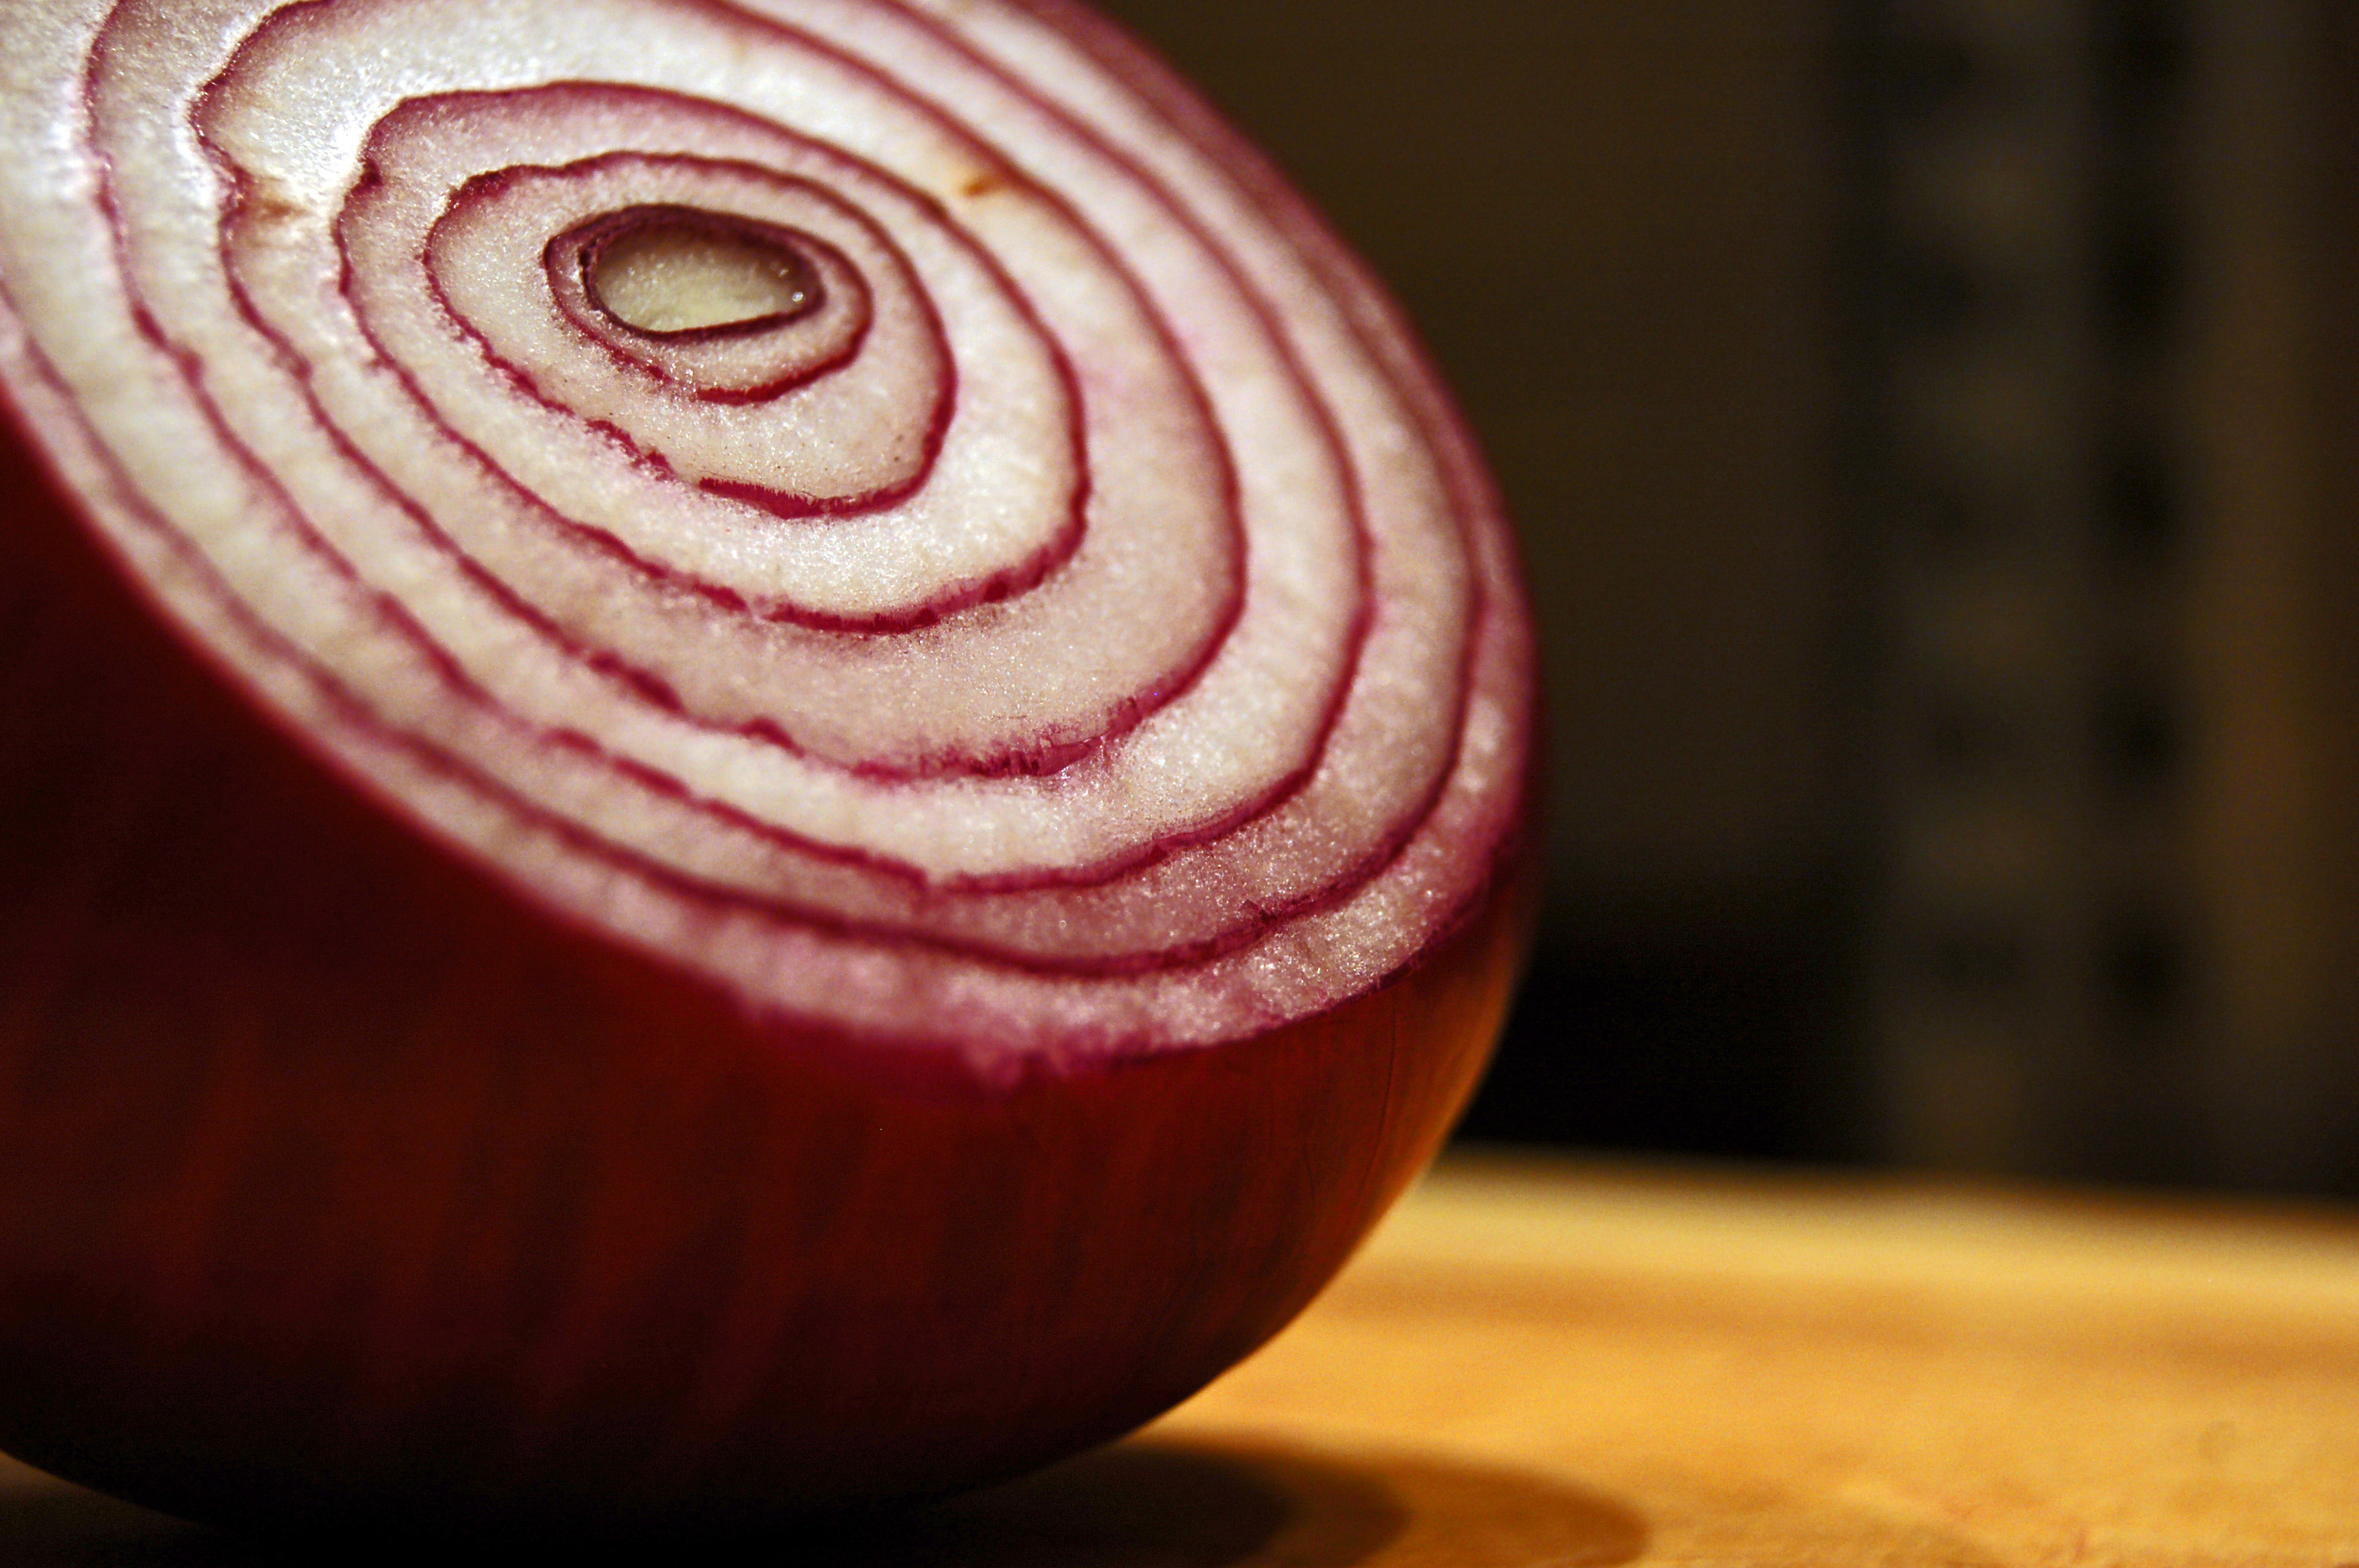 Your reputation is like an onion